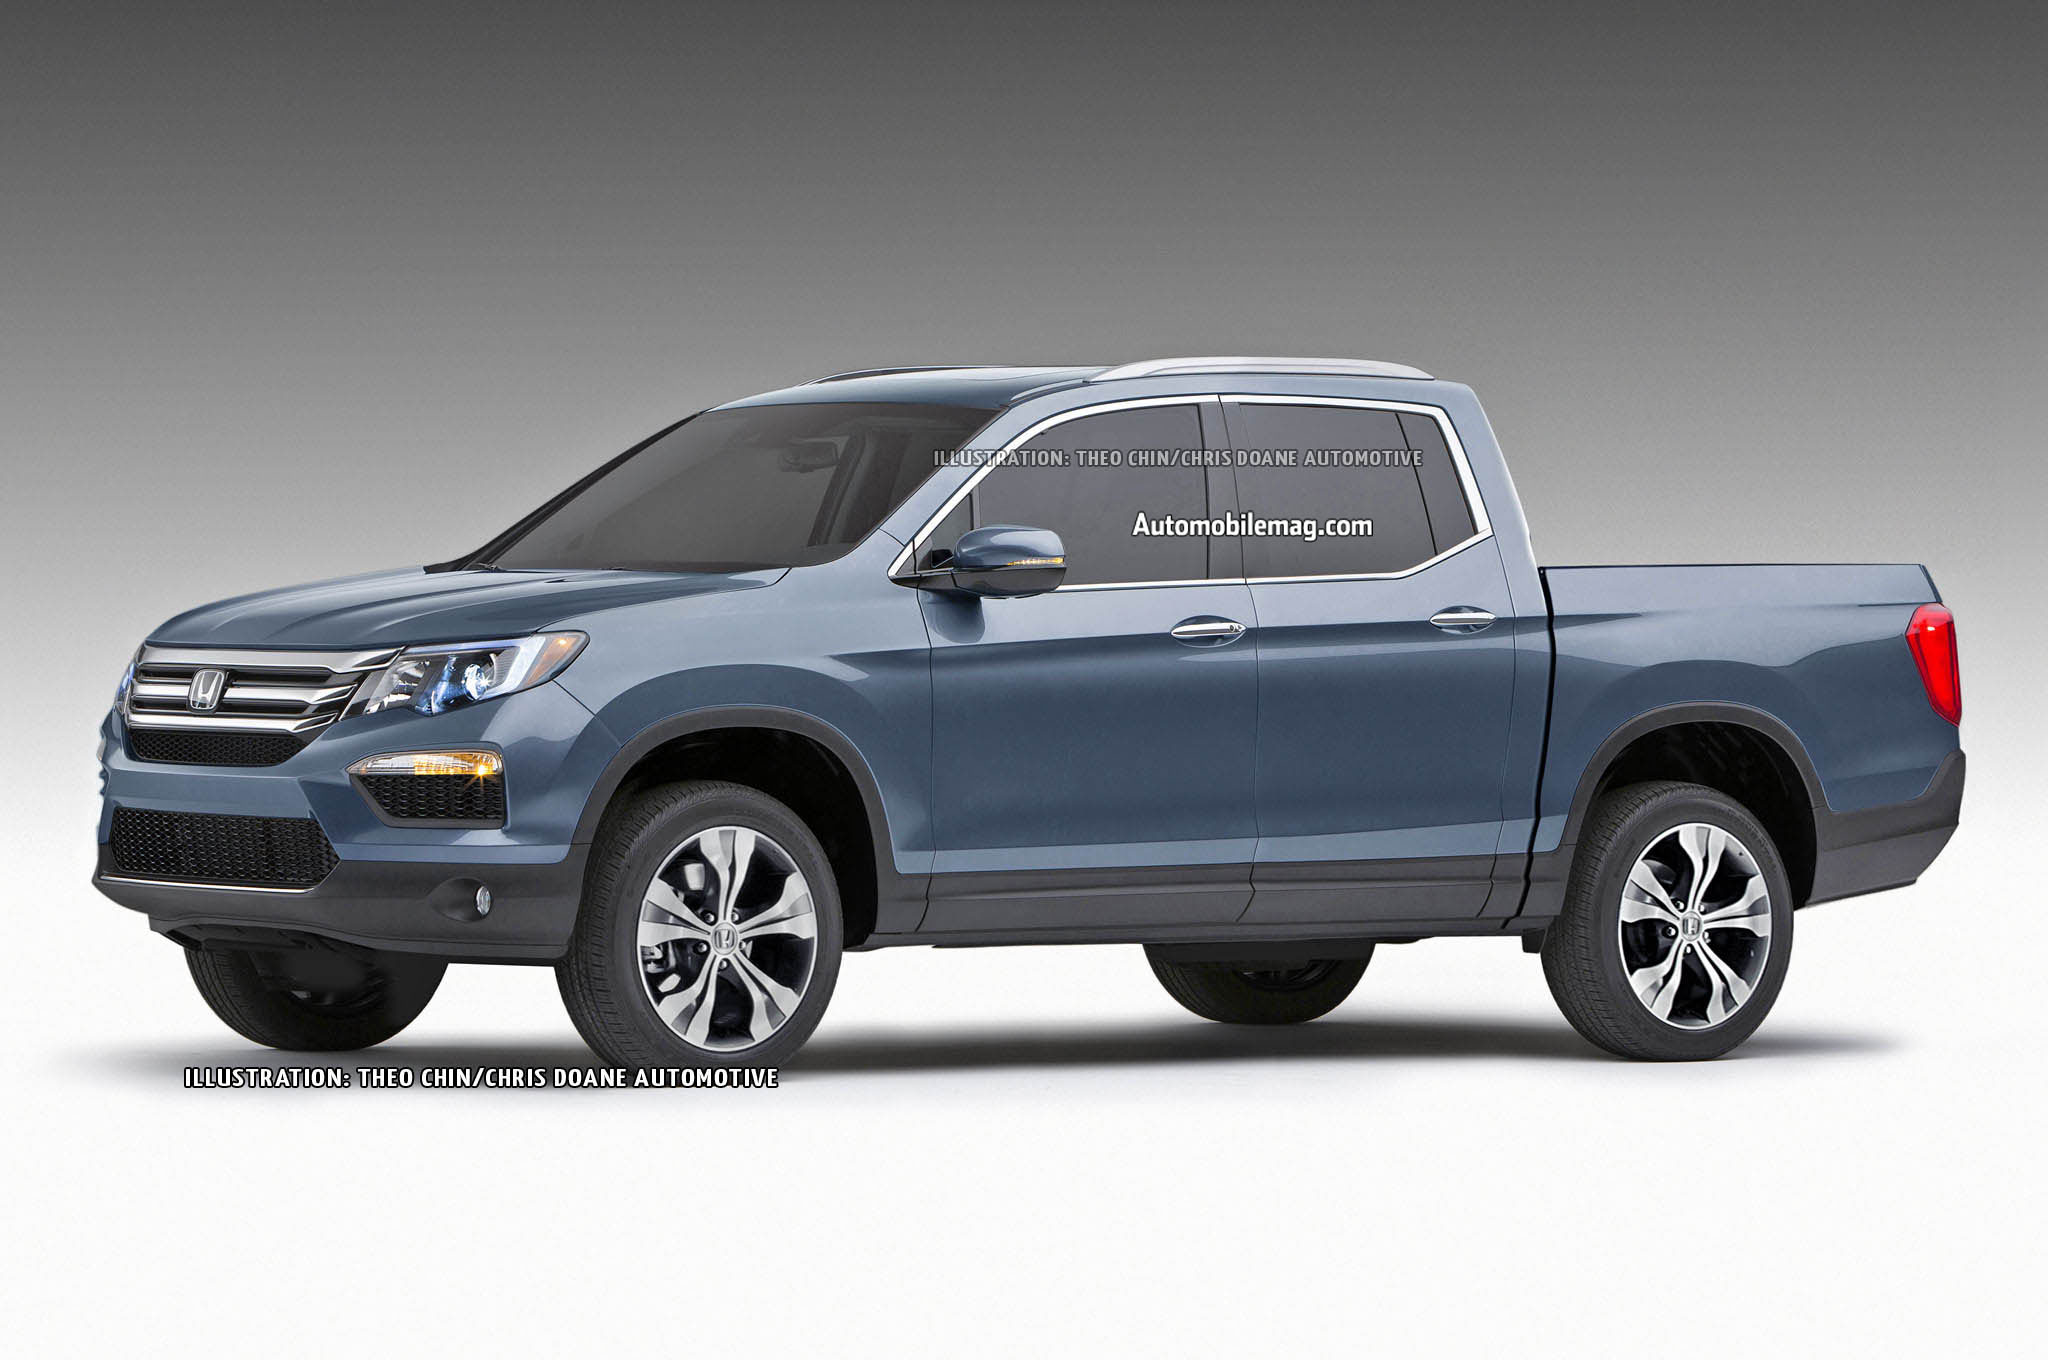 edition updates black and images ridgeline videos cars honda gallery photos exterior pictures exclusive truck